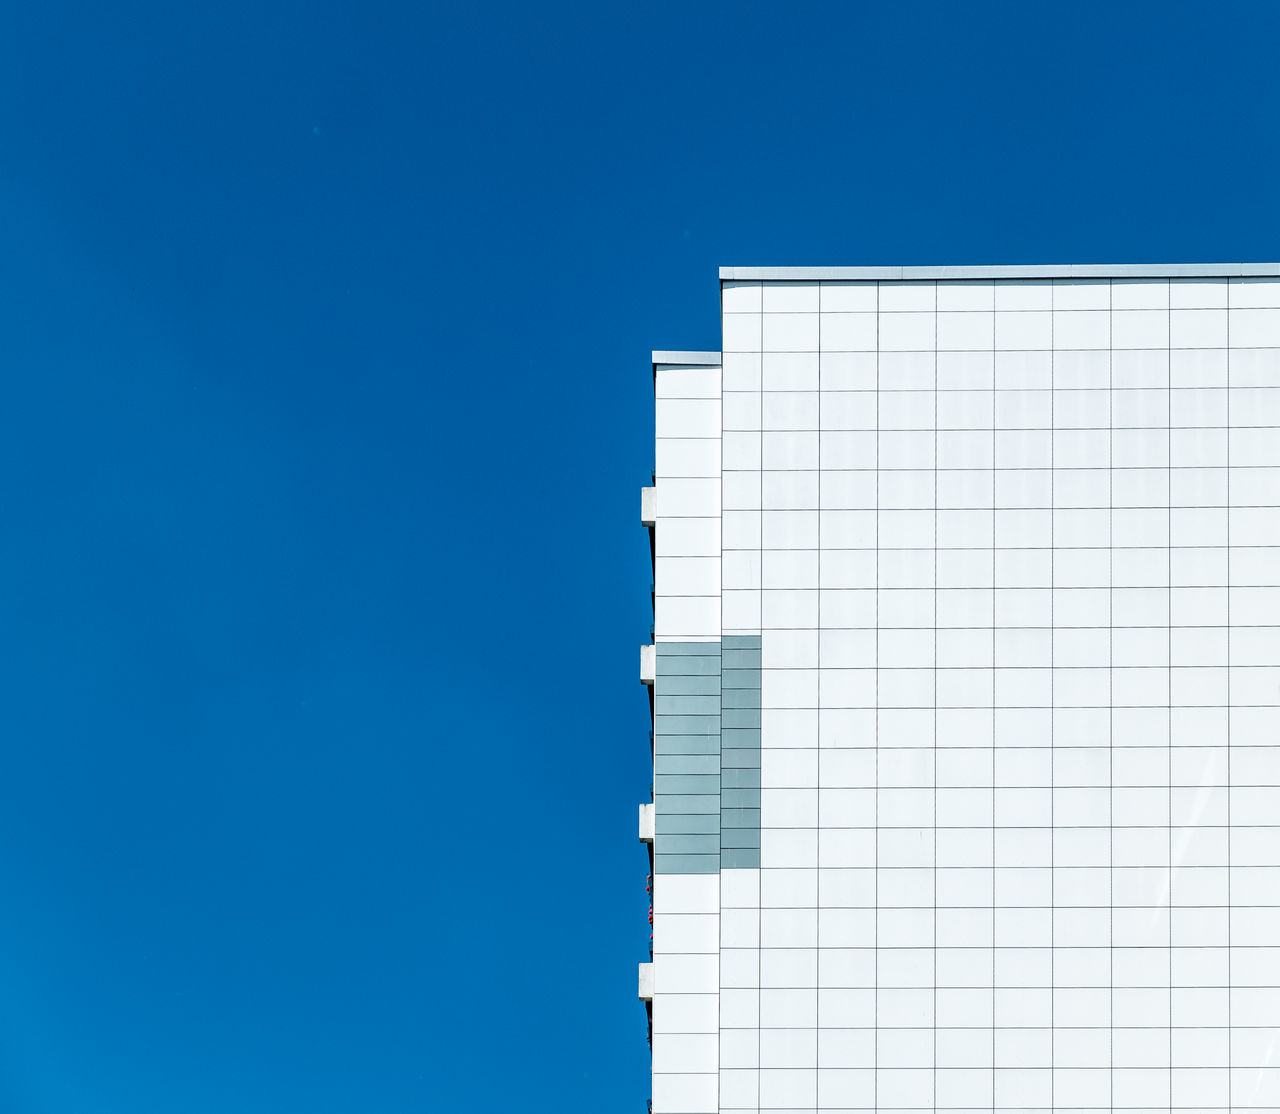 Cropped image of building against blue sky